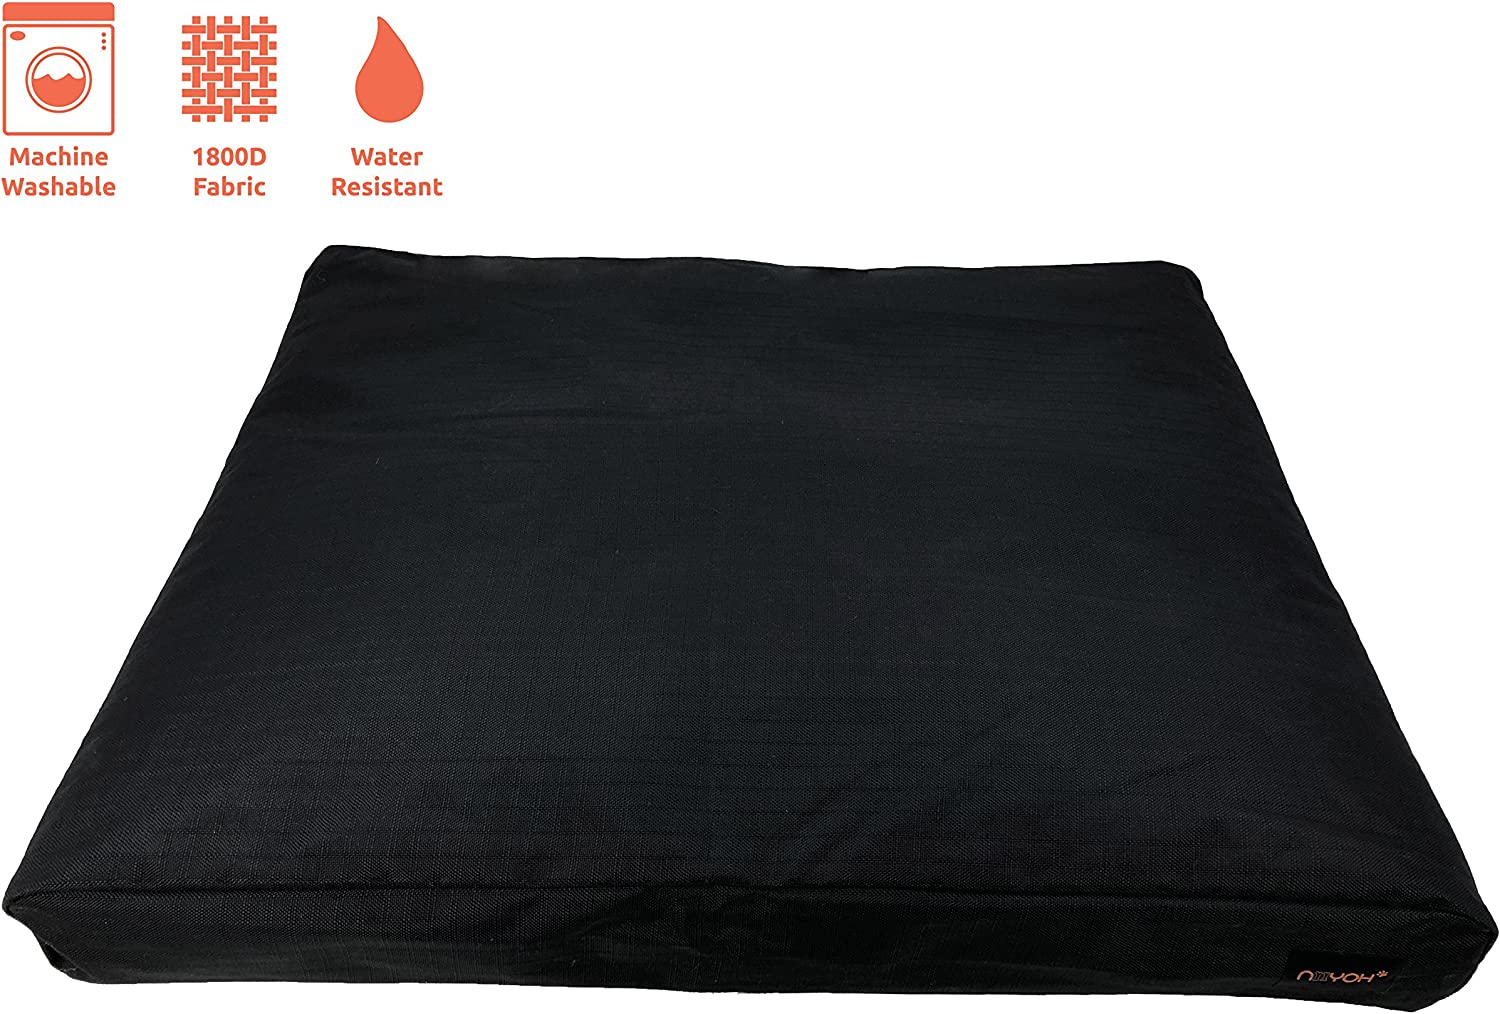 Niiyoh Mighty Dog Bed Orthopedic with Super Durable 1800D Ripstop Fabric Great for Outdoors